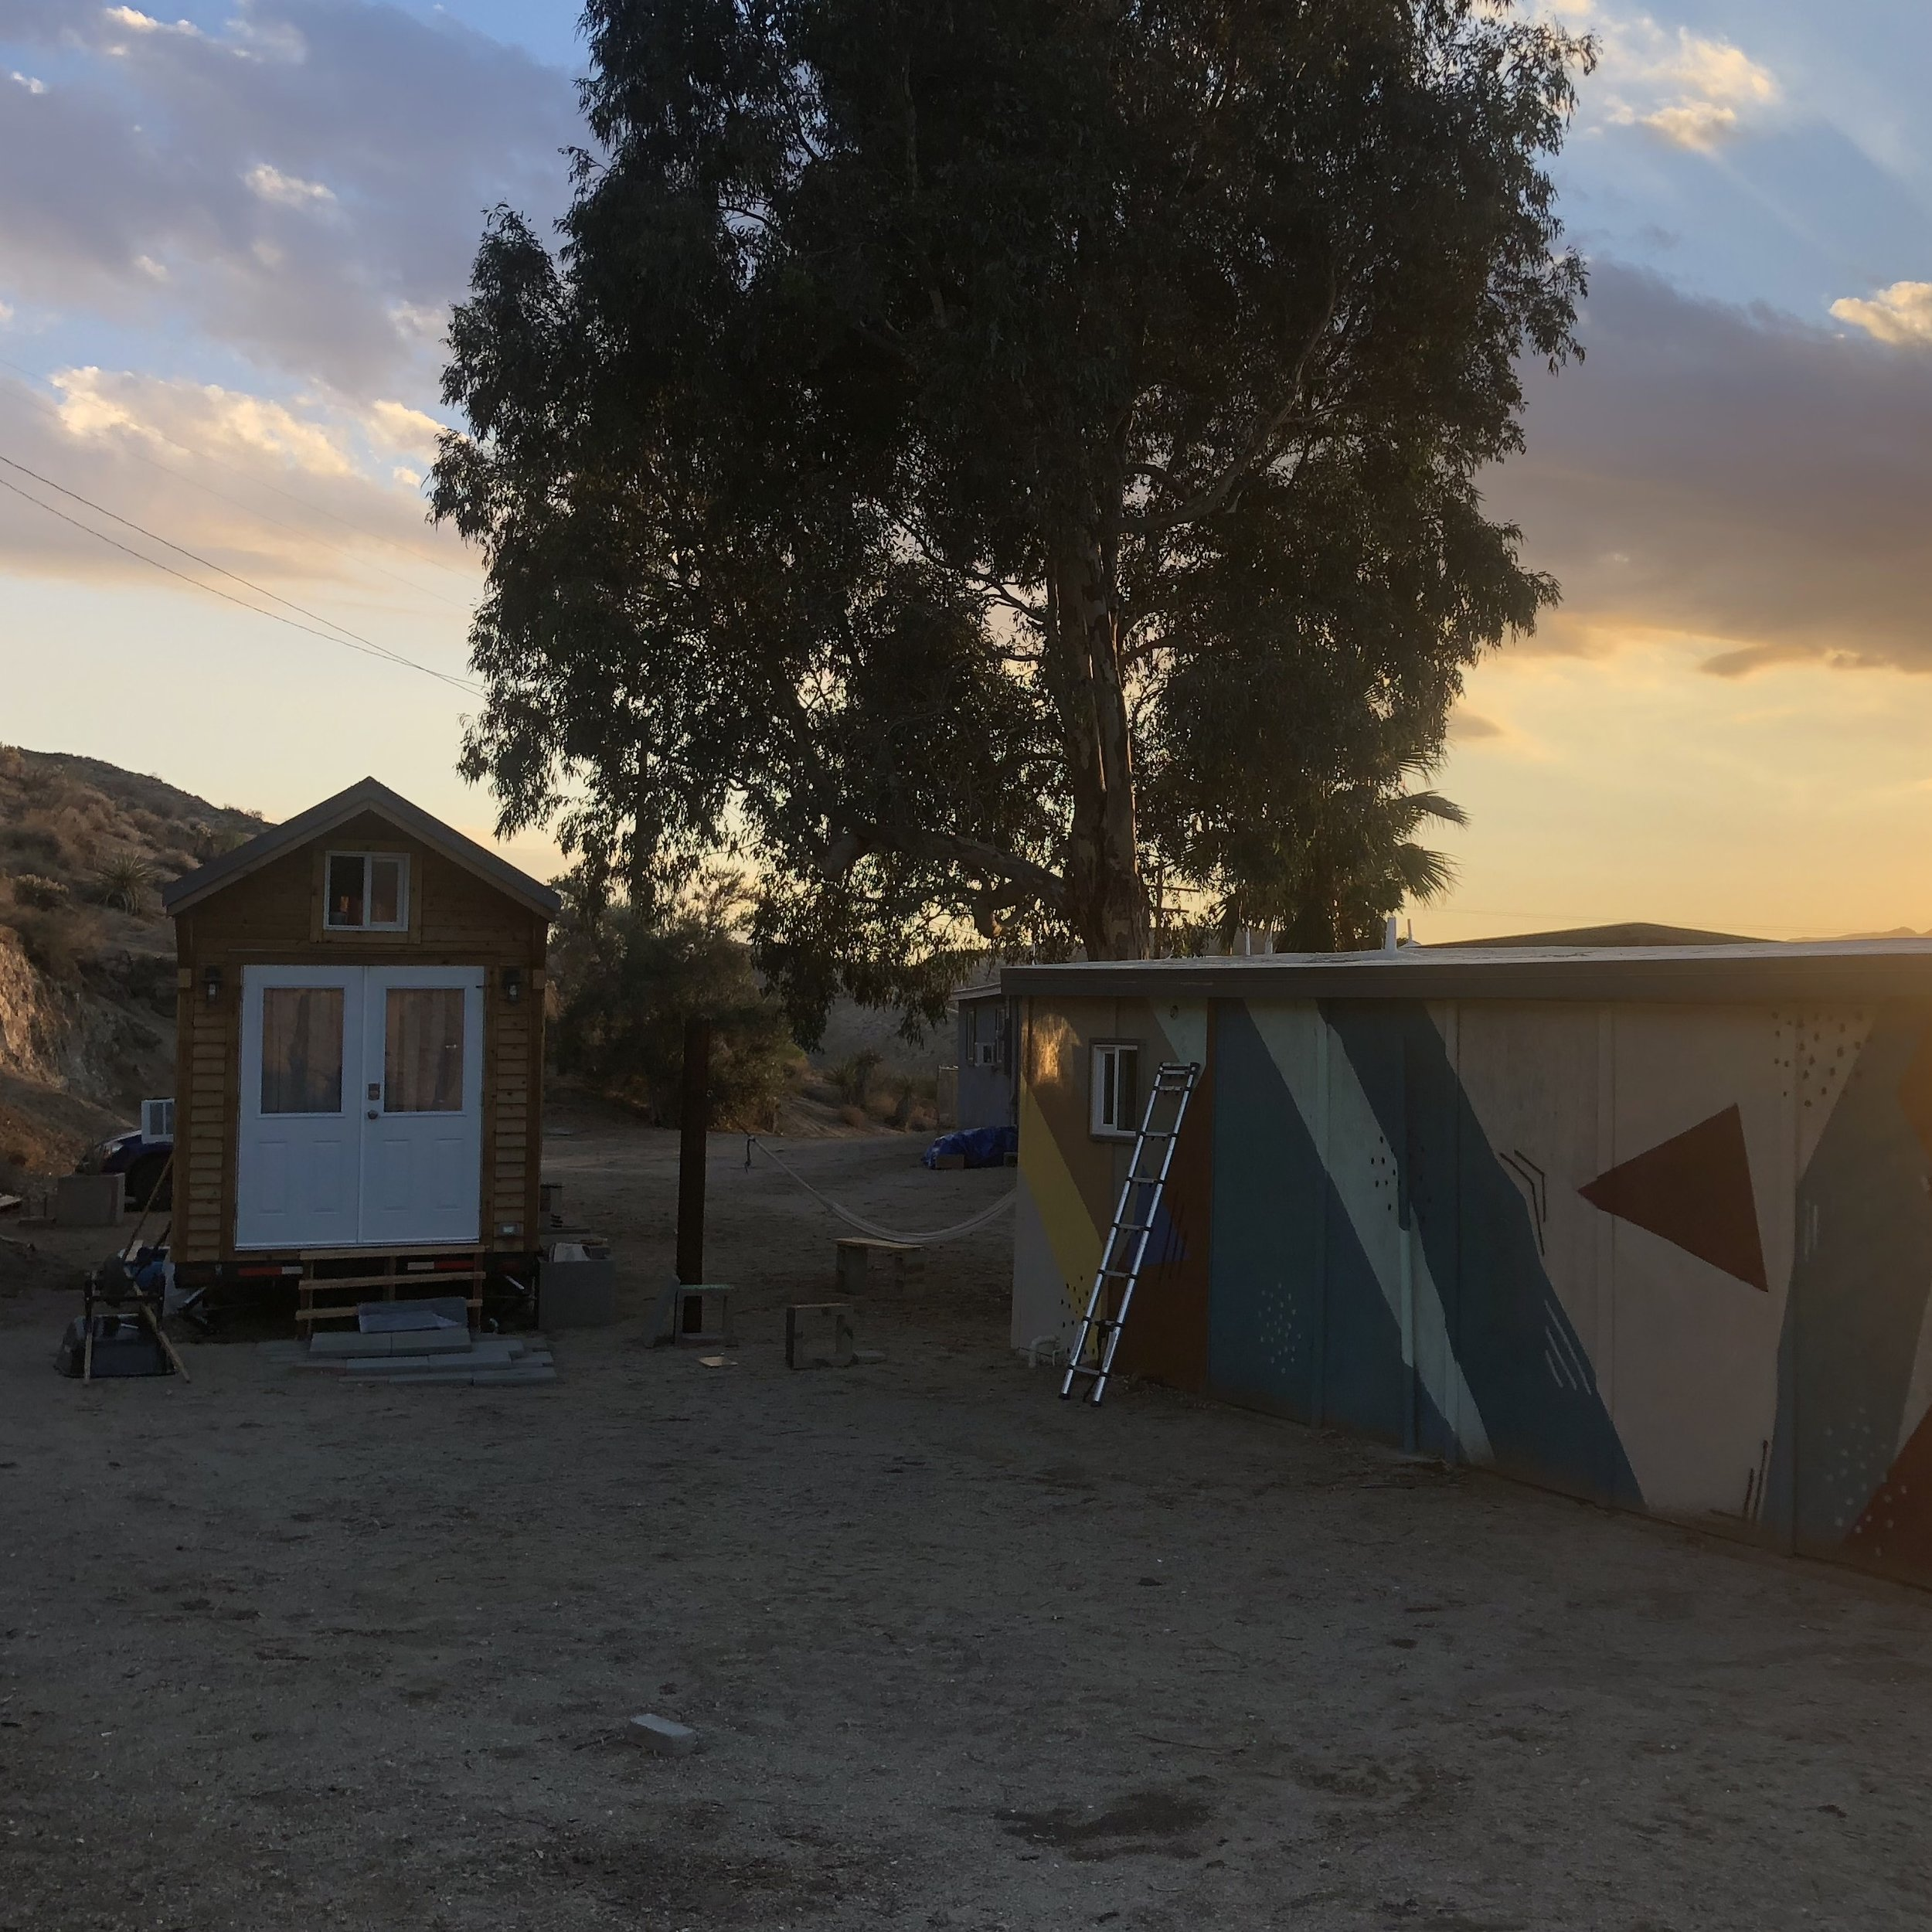 papermoonoutpost   Book a stay at our tiny house if you're headed to Yucca Festival!  #yuccafest #tinyhouse #tinyhome #desert